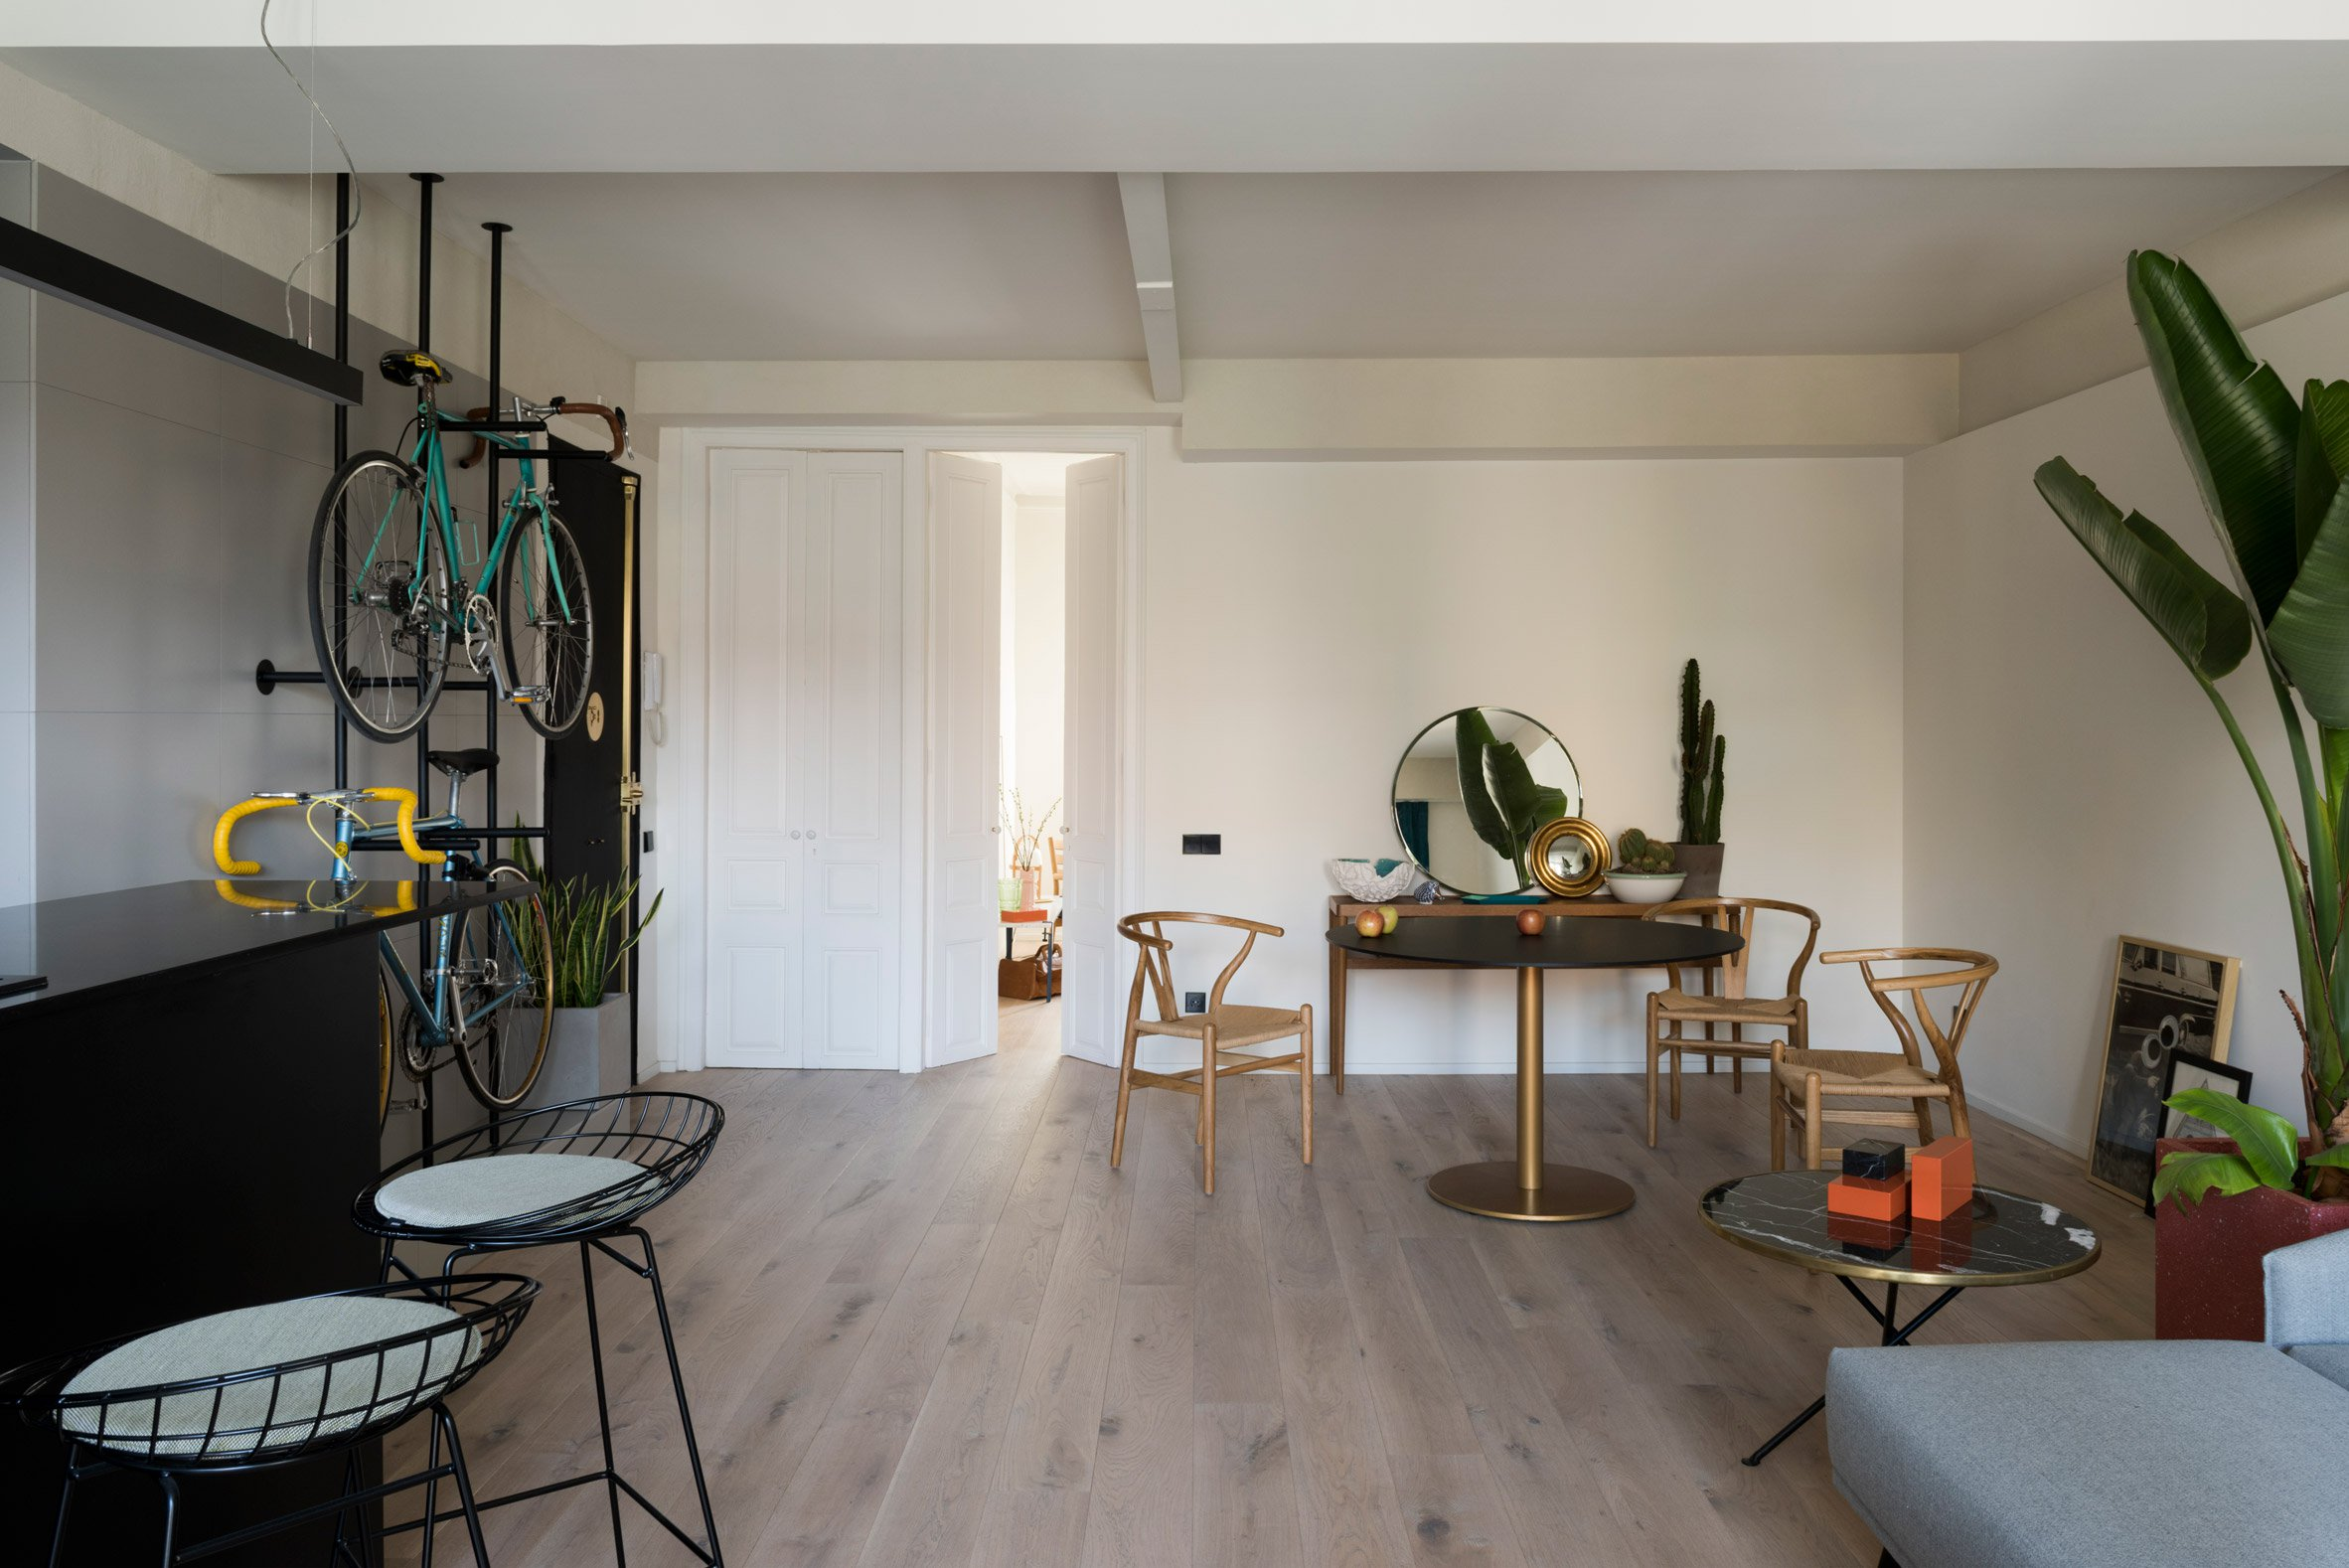 4. Home reno by Colombo and Serboli in Barcelona - Apartment renovation in Barcelona features bespoke bicycles storage